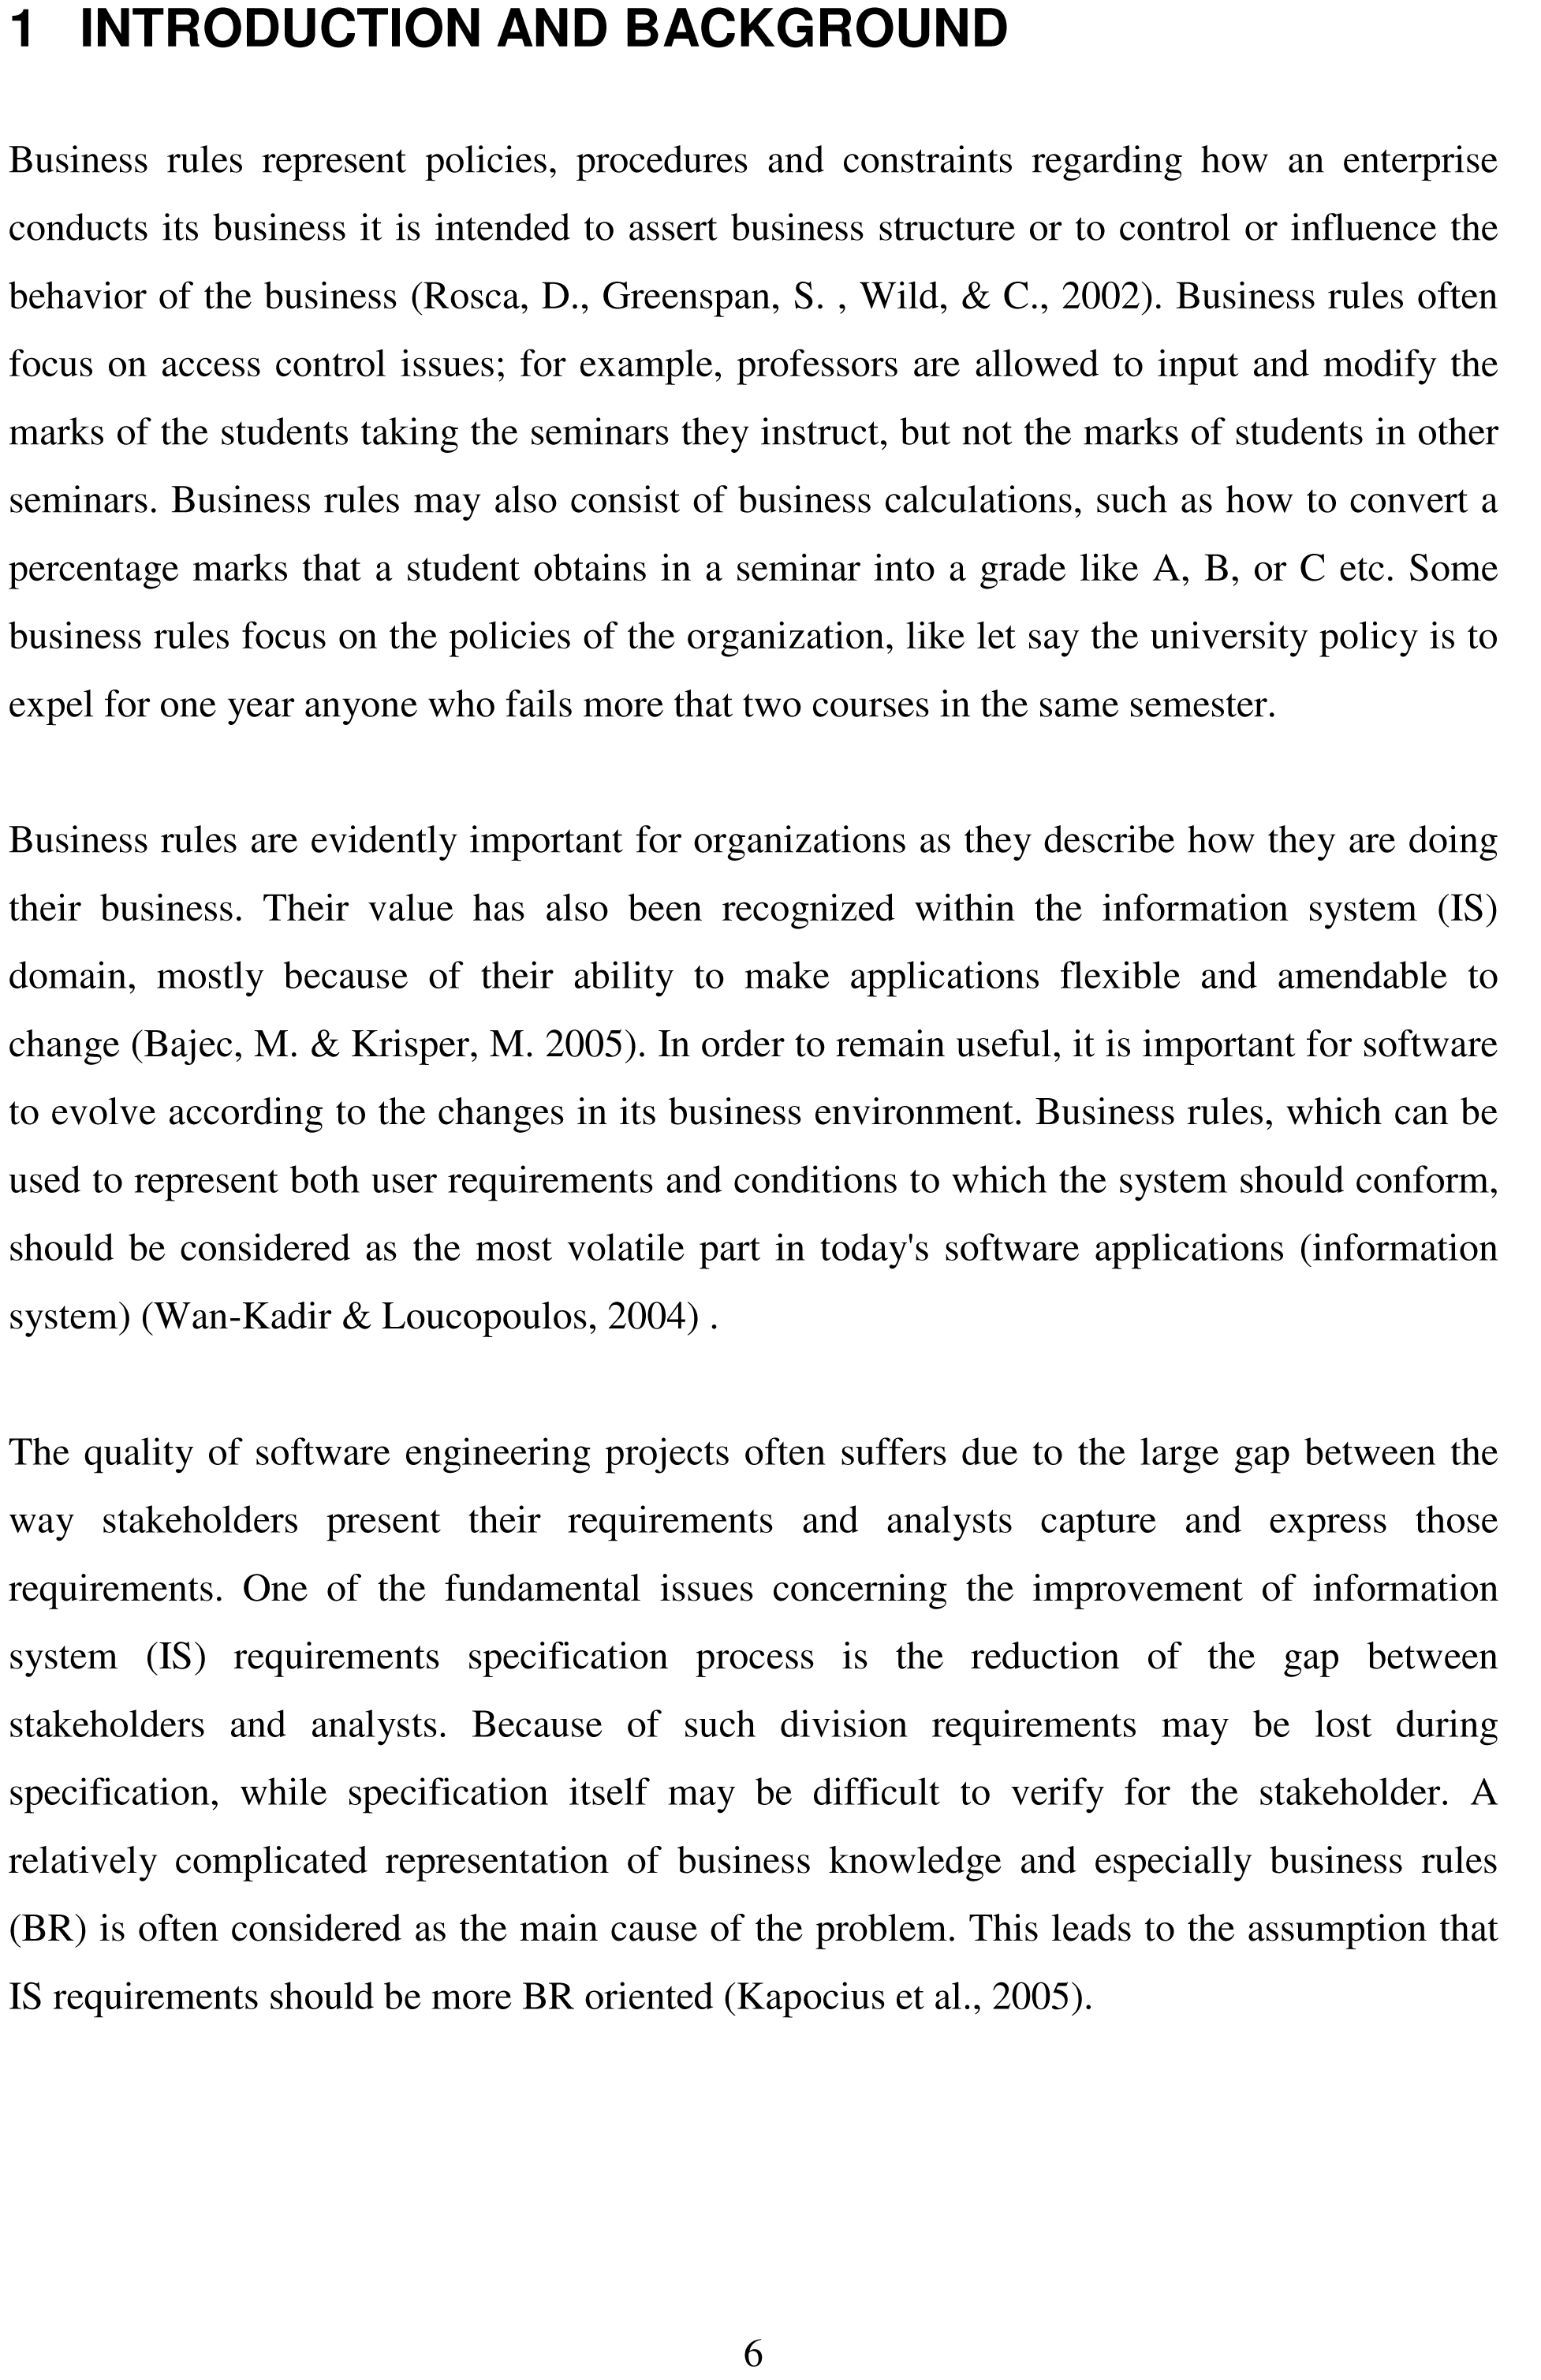 012 Opening Sentences For Essays Thesis Free Sample1 Essay Unique Examples Of Good College Paragraphs Starting Full